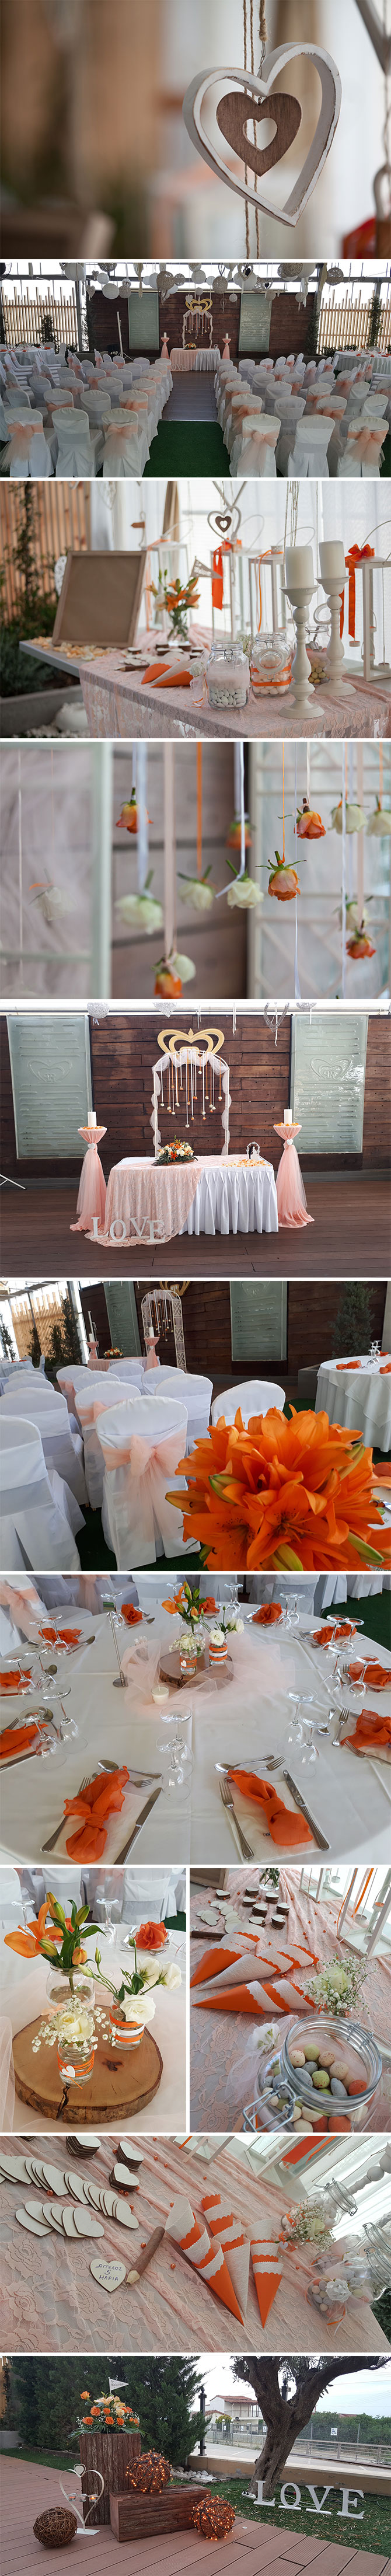 Aggelos&Maria-Decoration